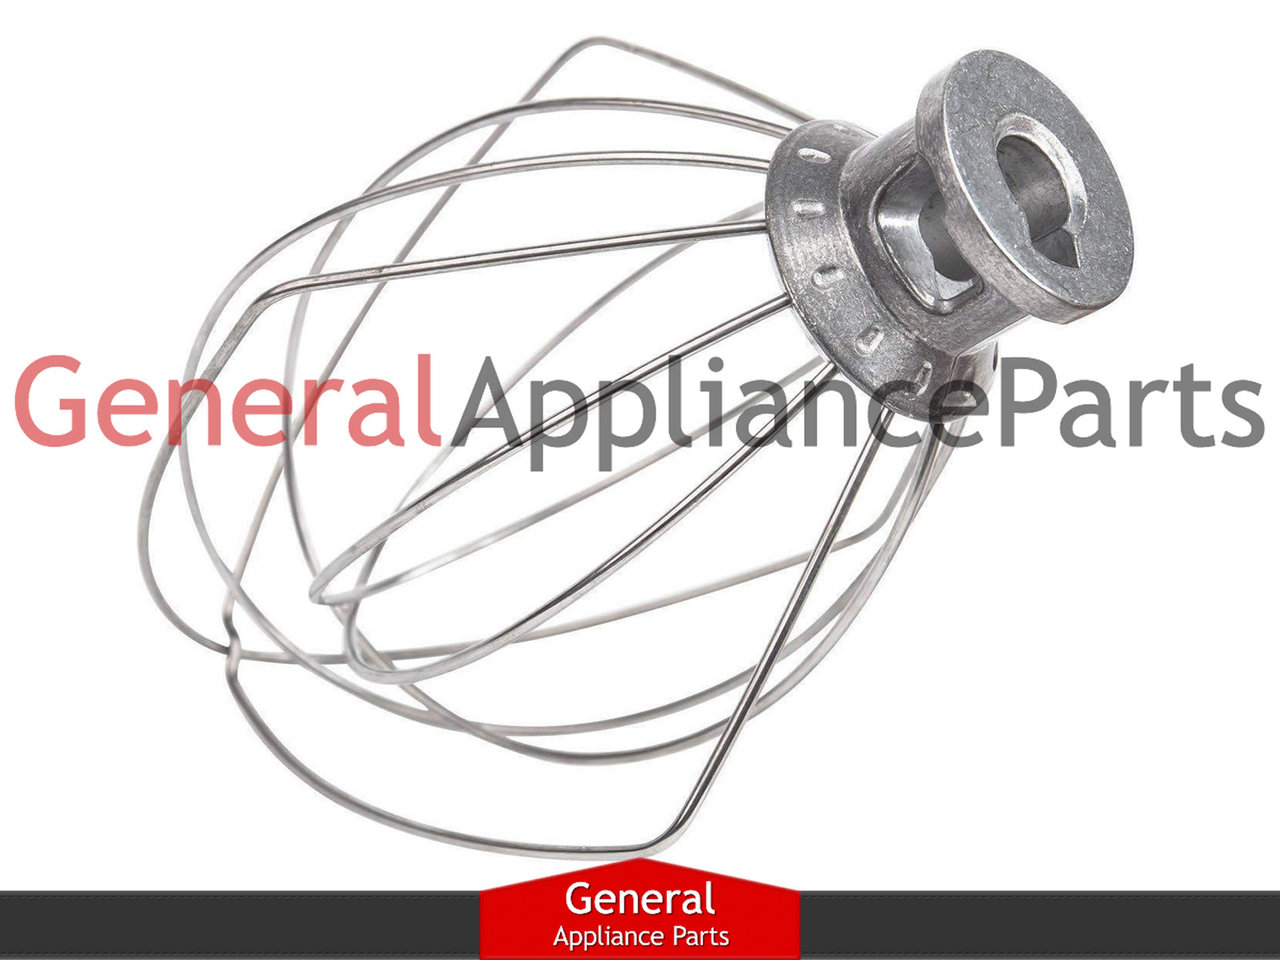 Climatek Stand Mixer Wire Whip Replaces Kitchenaid